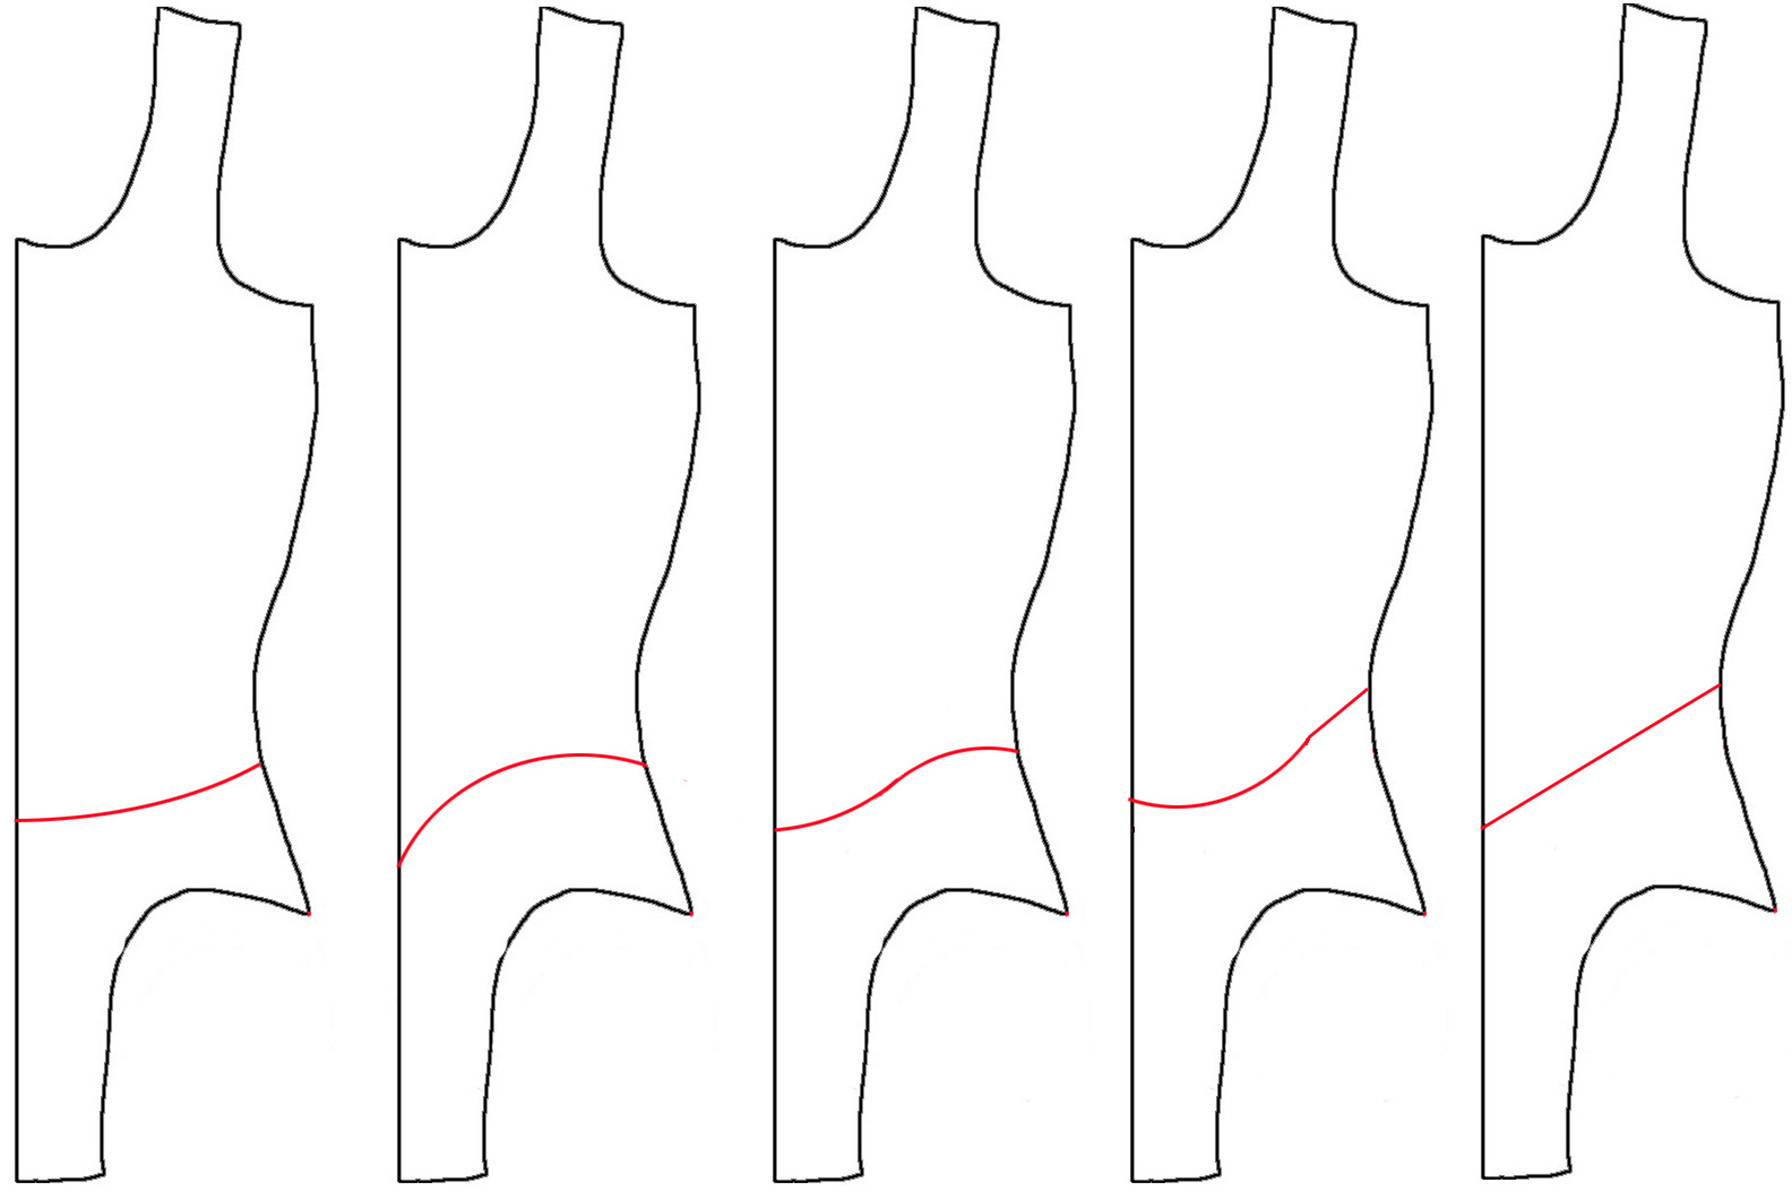 A hand drawn diagram showing various skirt placement options.